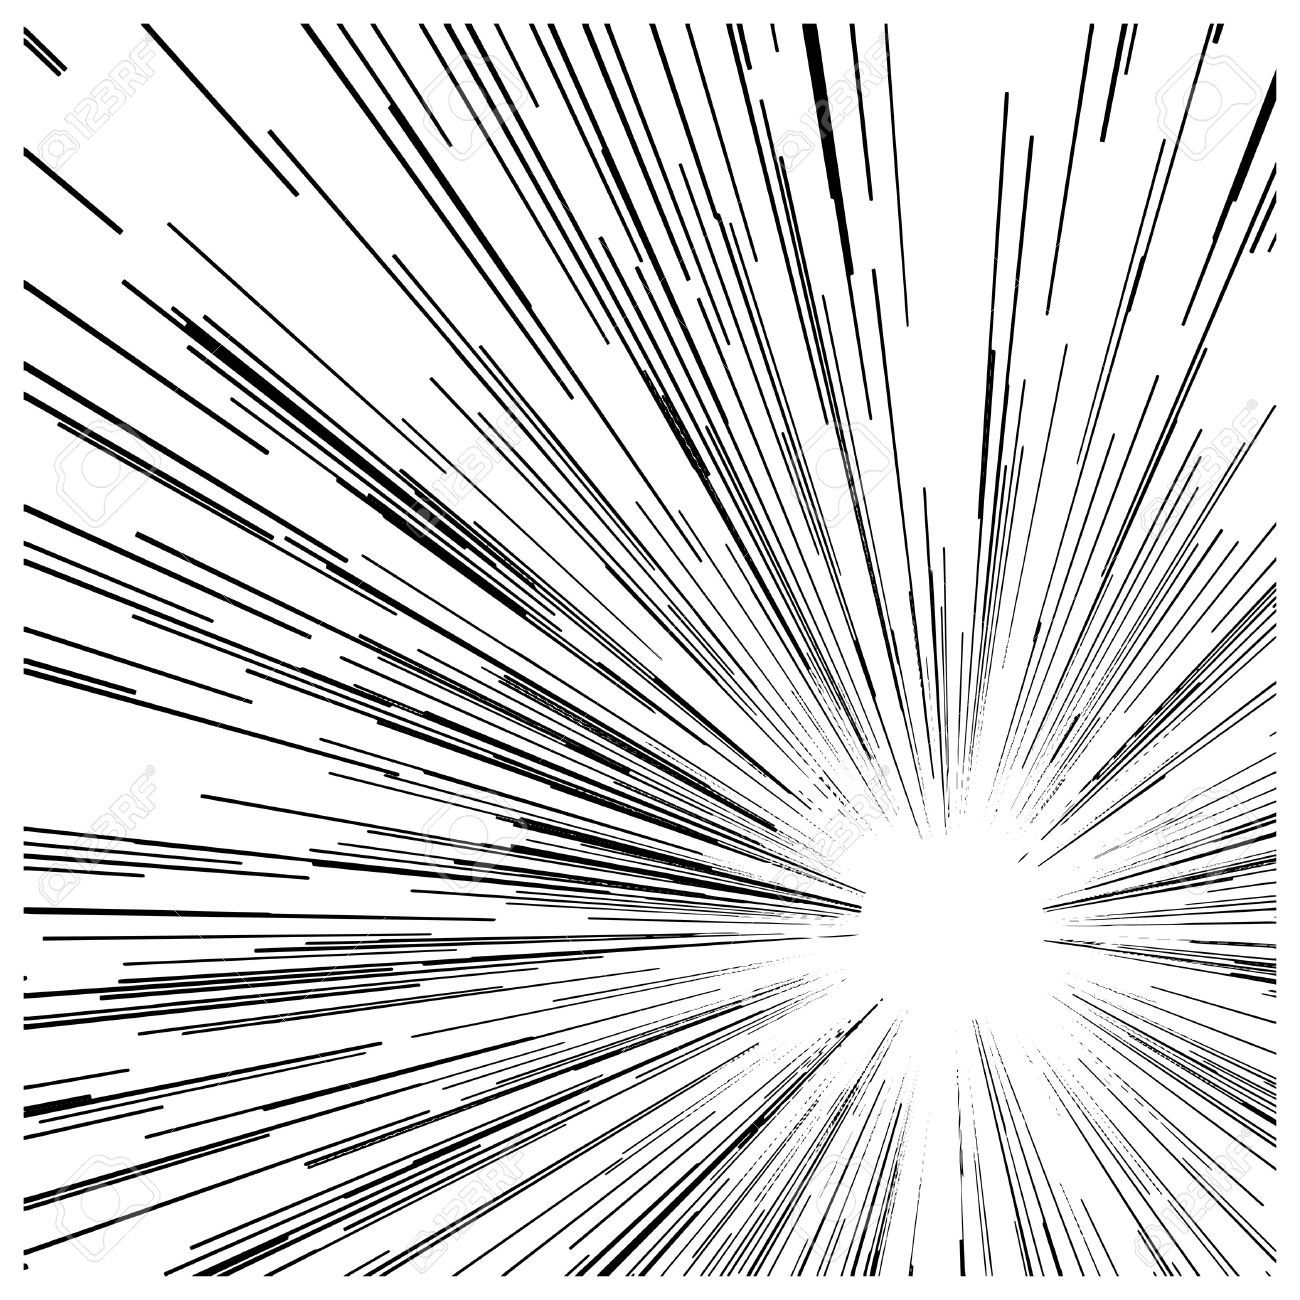 Illustration Vector Abstract Speed Motion Black Lines With Circle In The Middle Aff Abstract Speed Illustration Vector Motion Manga